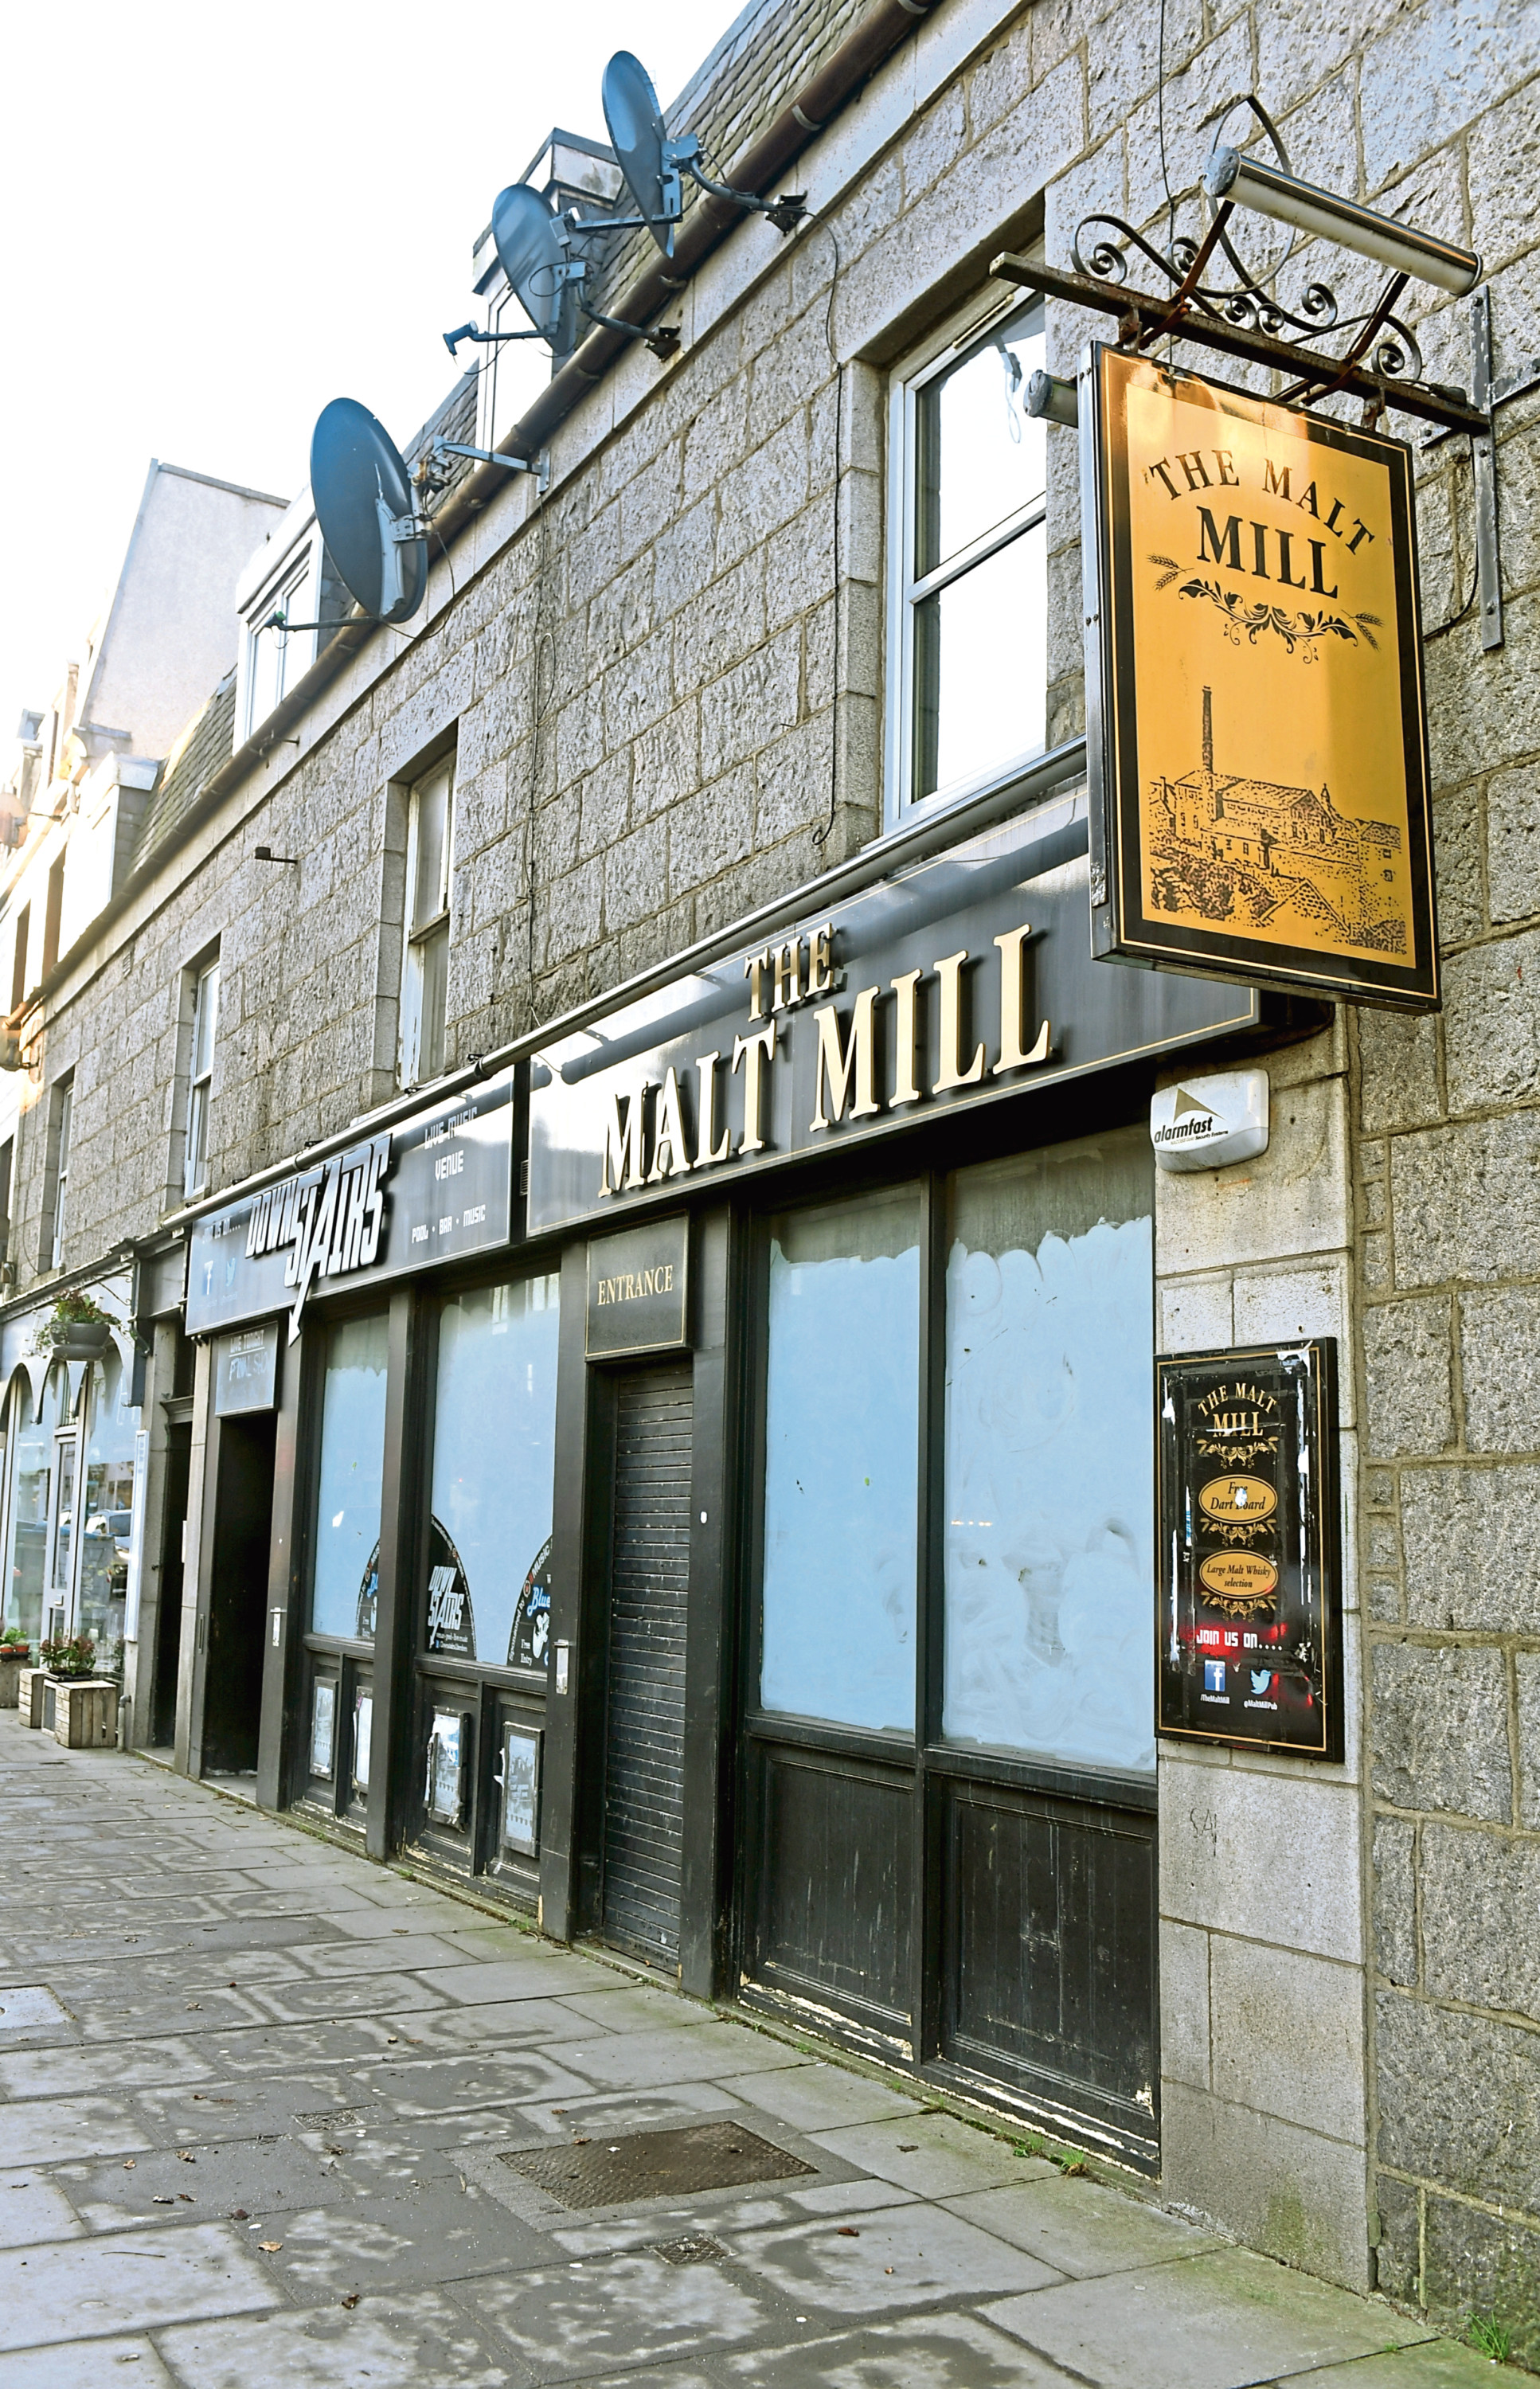 There is a new planning application in to turn the Malt Mill into a wine bar/private members club.